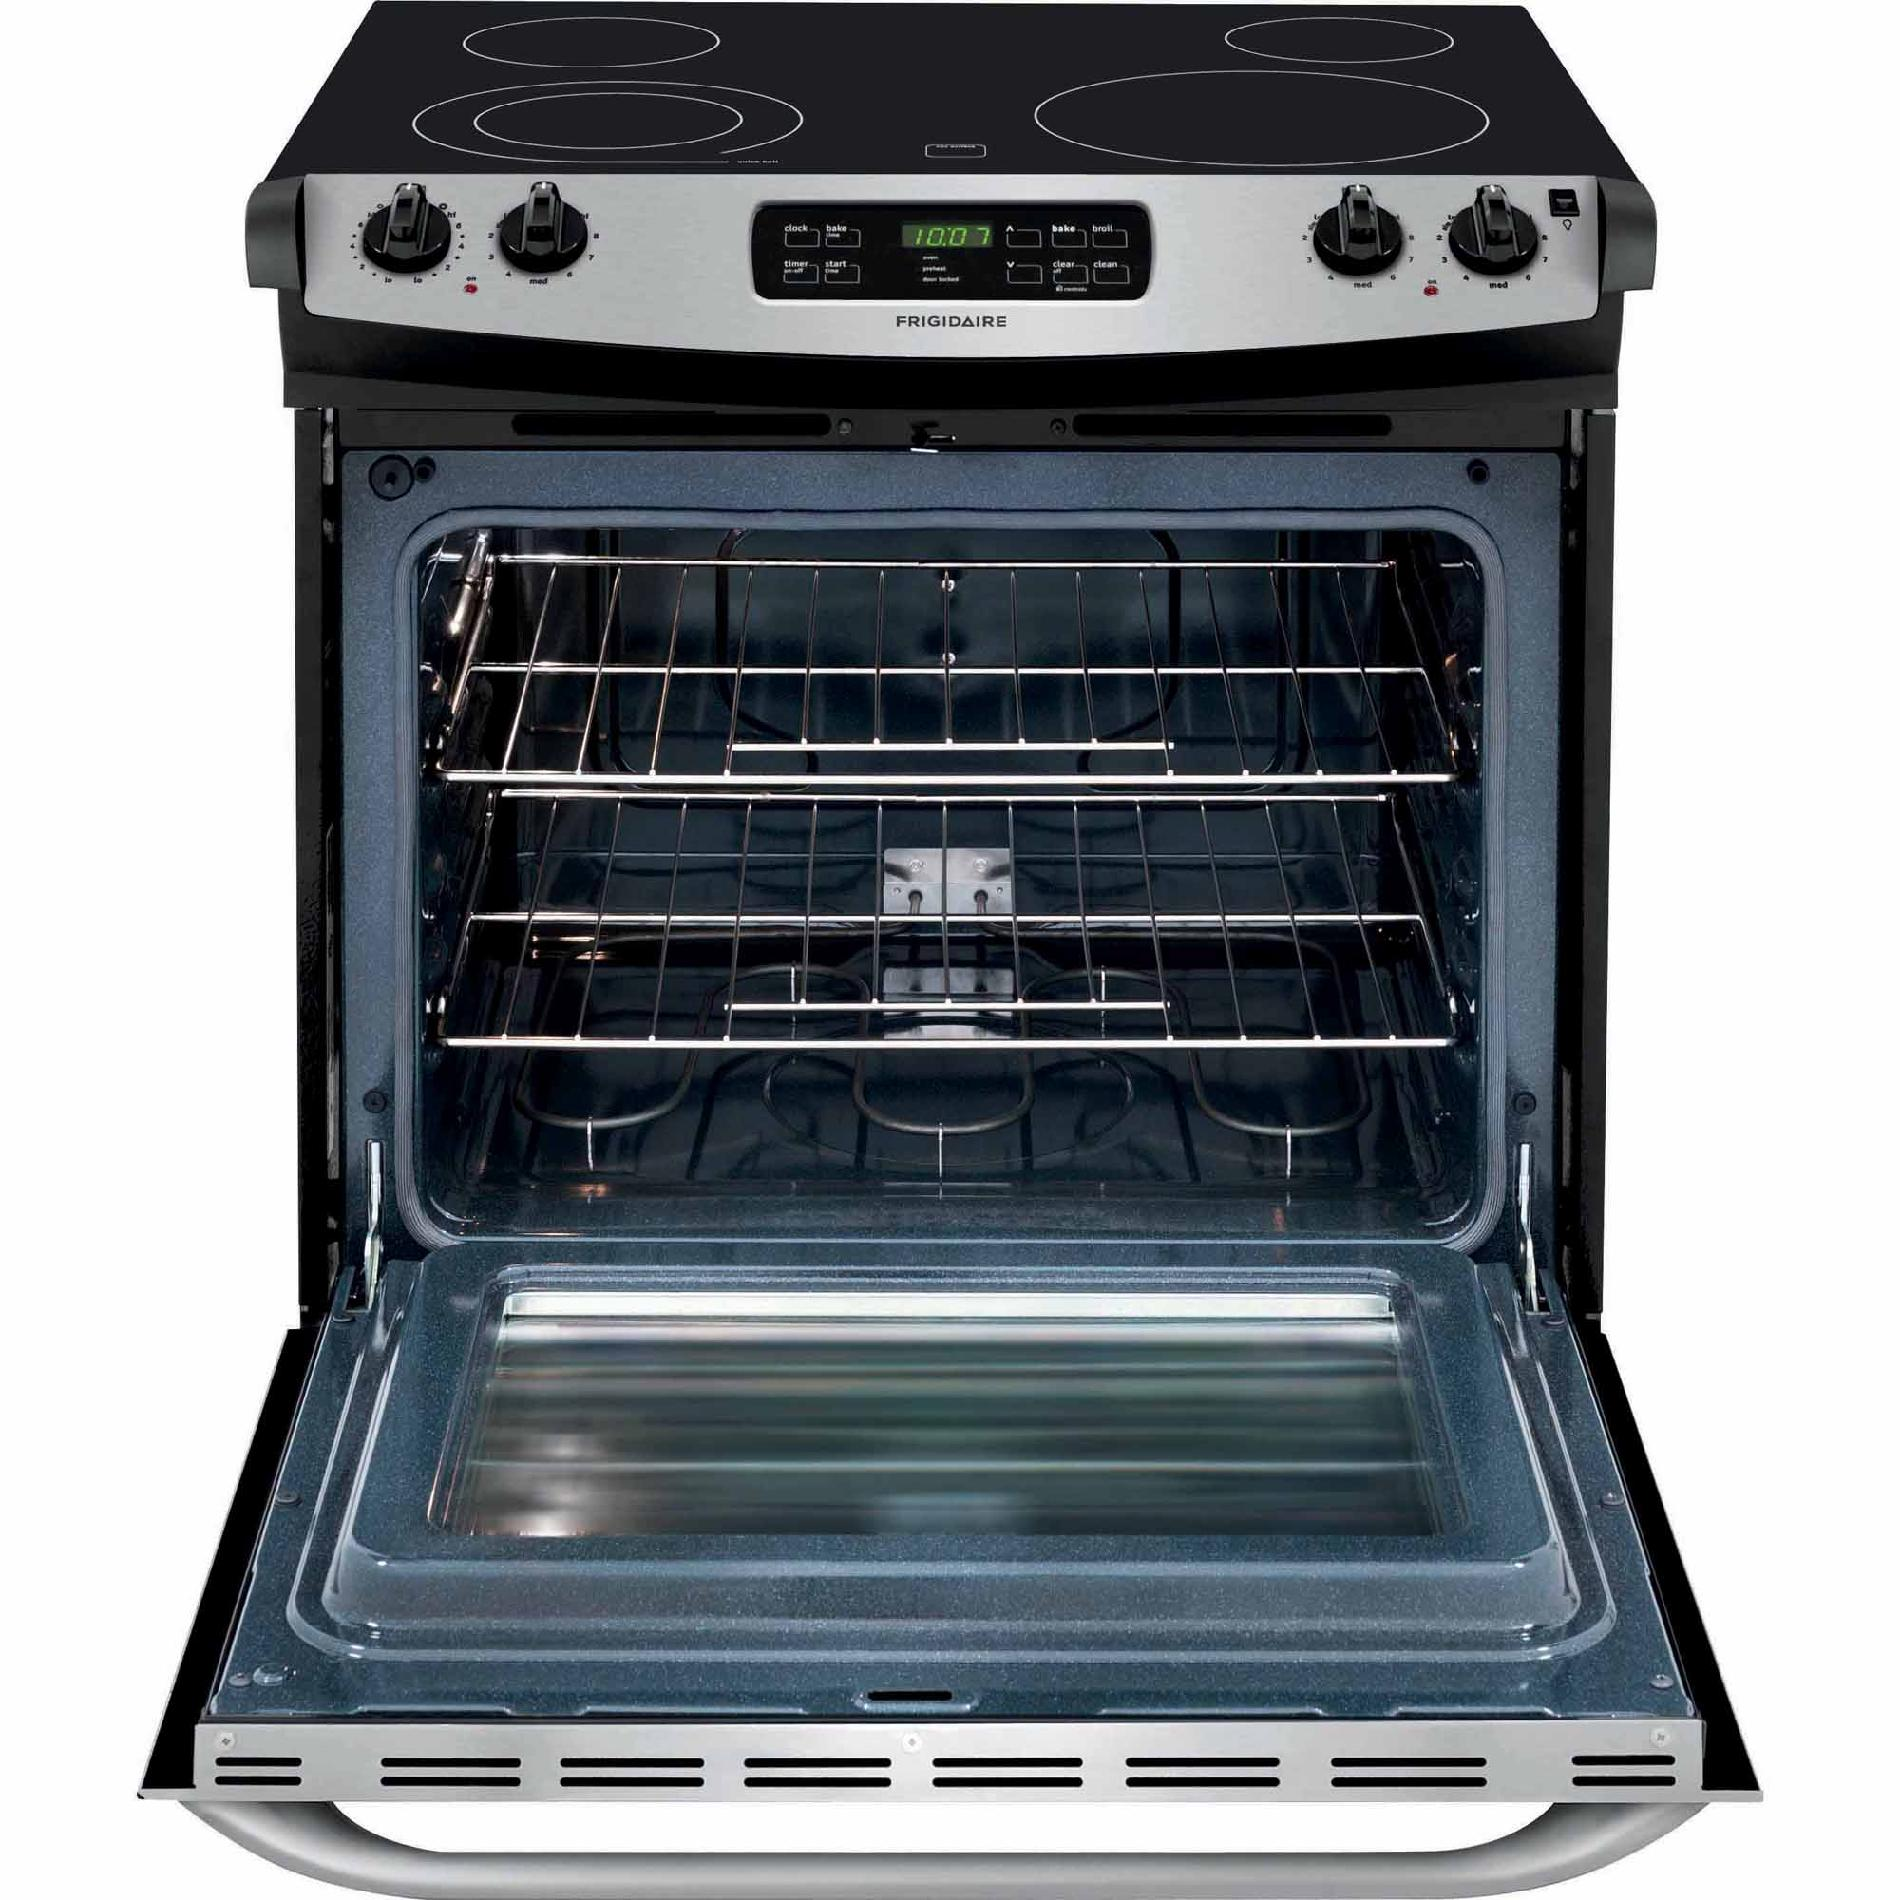 Frigidaire FFES3025PS 4.6 cu. ft. Slide-In Electric Range - Stainless Steel